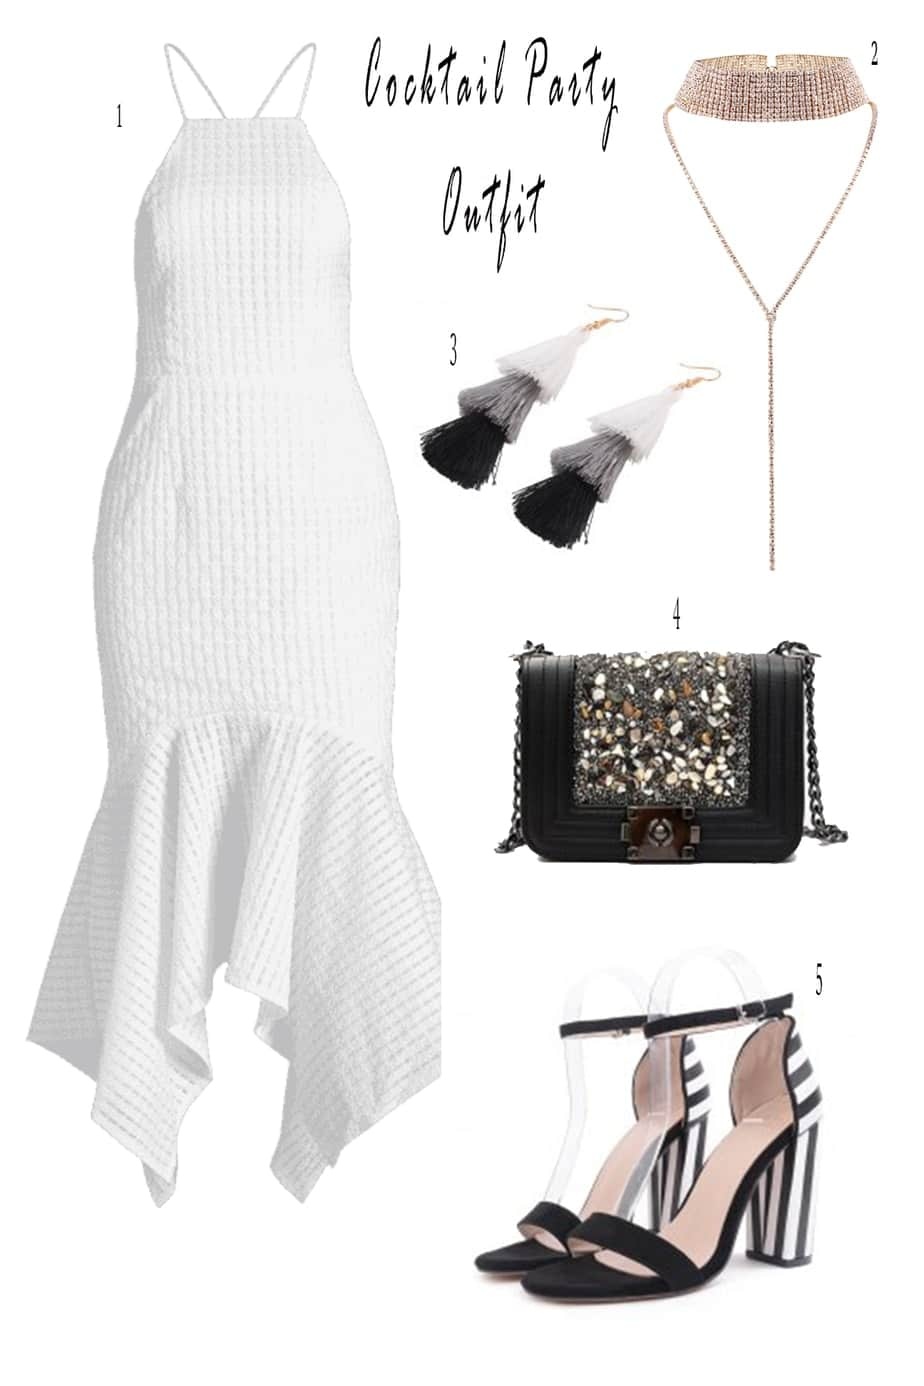 Cute White Cocktail Dresses And Accessories | Just Some Cute Things I Found At ZAFUL | Christmas Party Dresses | White Cocktail Dresses | Travel Beauty Blog